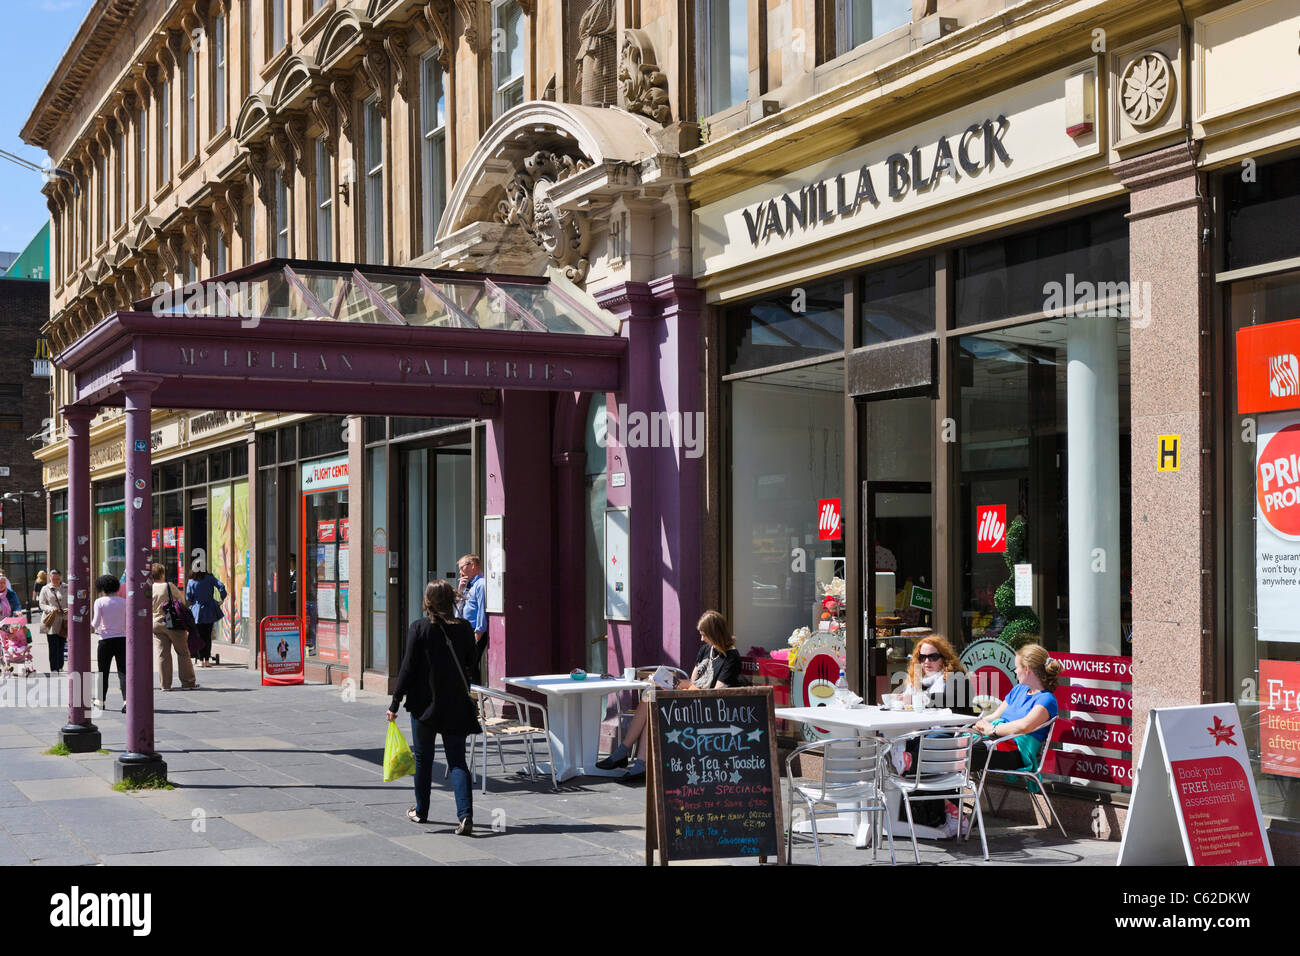 Cafe outside the McLellan Galleries on Sauchiehall Street in the city centre, Glasgow, Scotland, UK - Stock Image